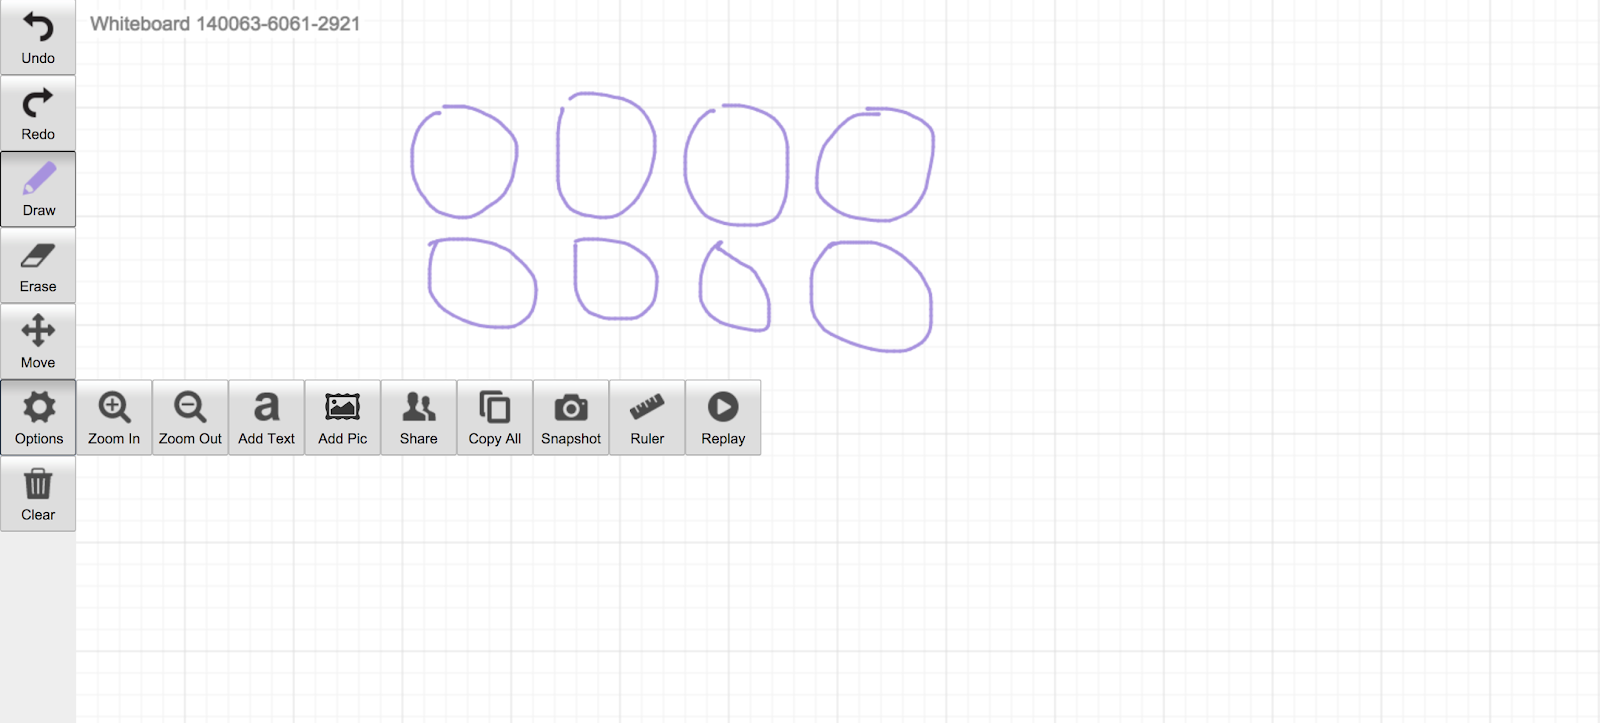 Easy to Access Digital Whiteboards with Collaborative